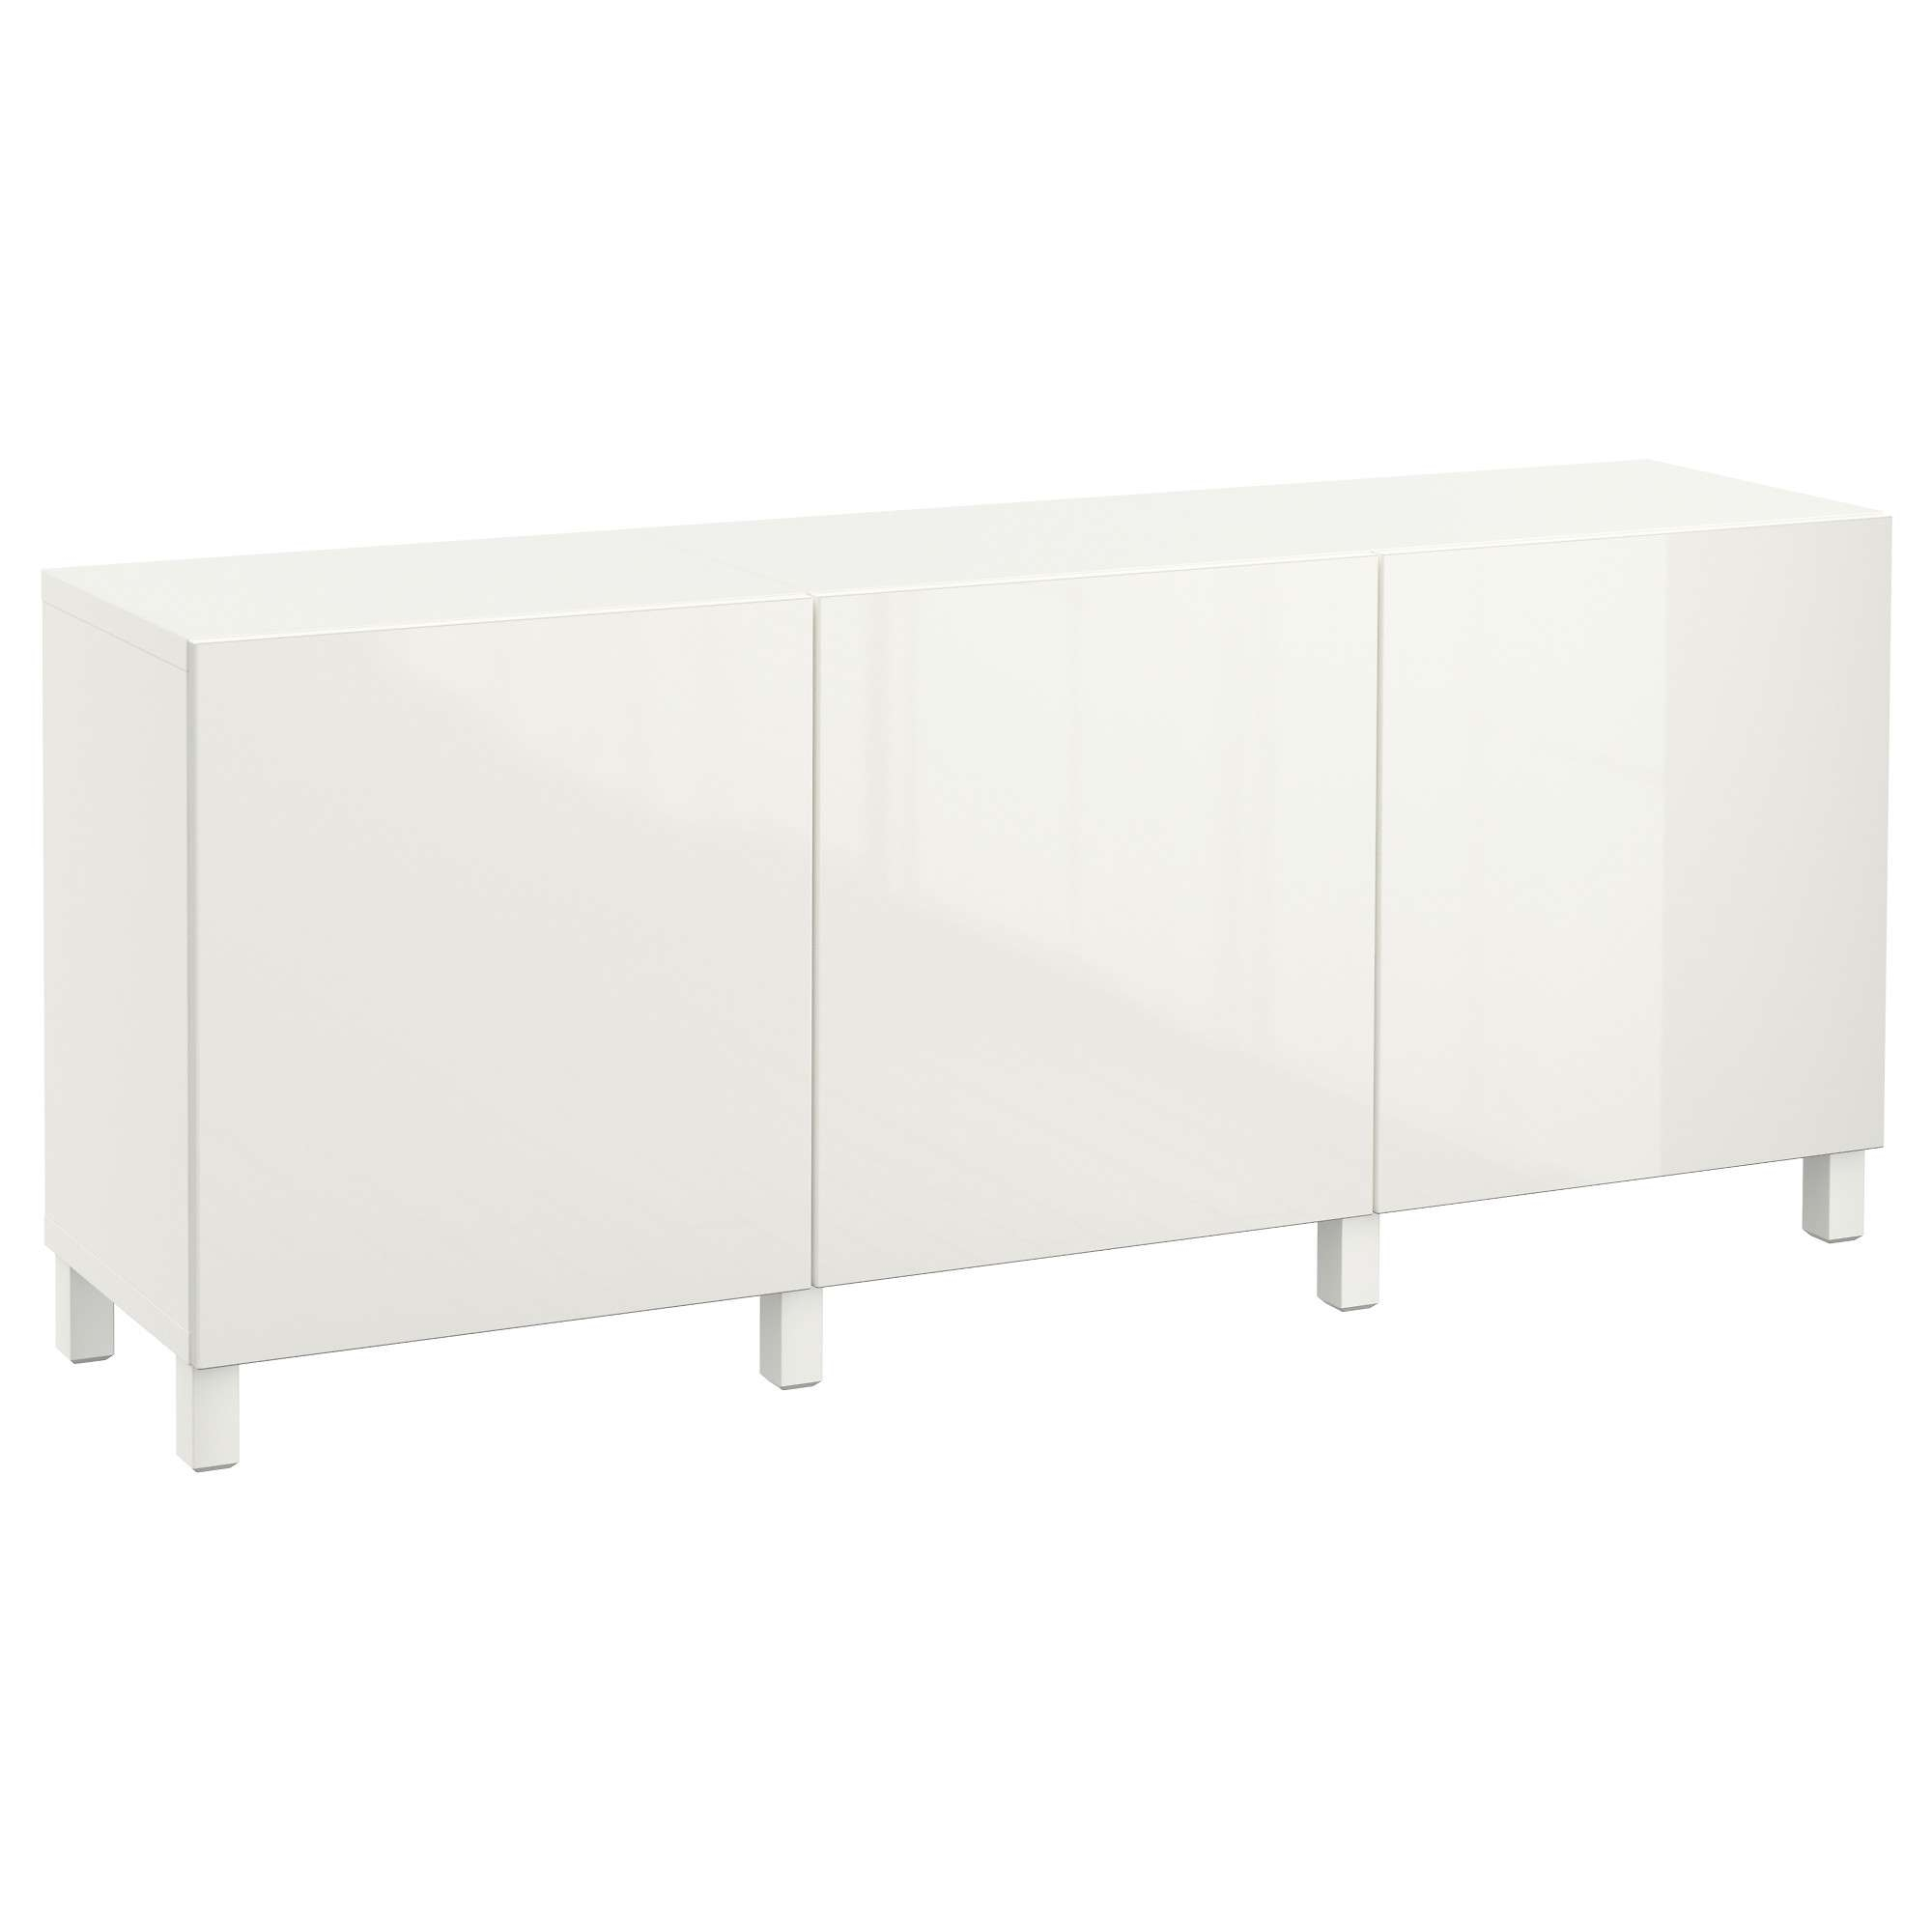 Bestå Storage Combination With Doors – White/selsviken High Gloss With Canada Ikea Sideboards (View 2 of 20)